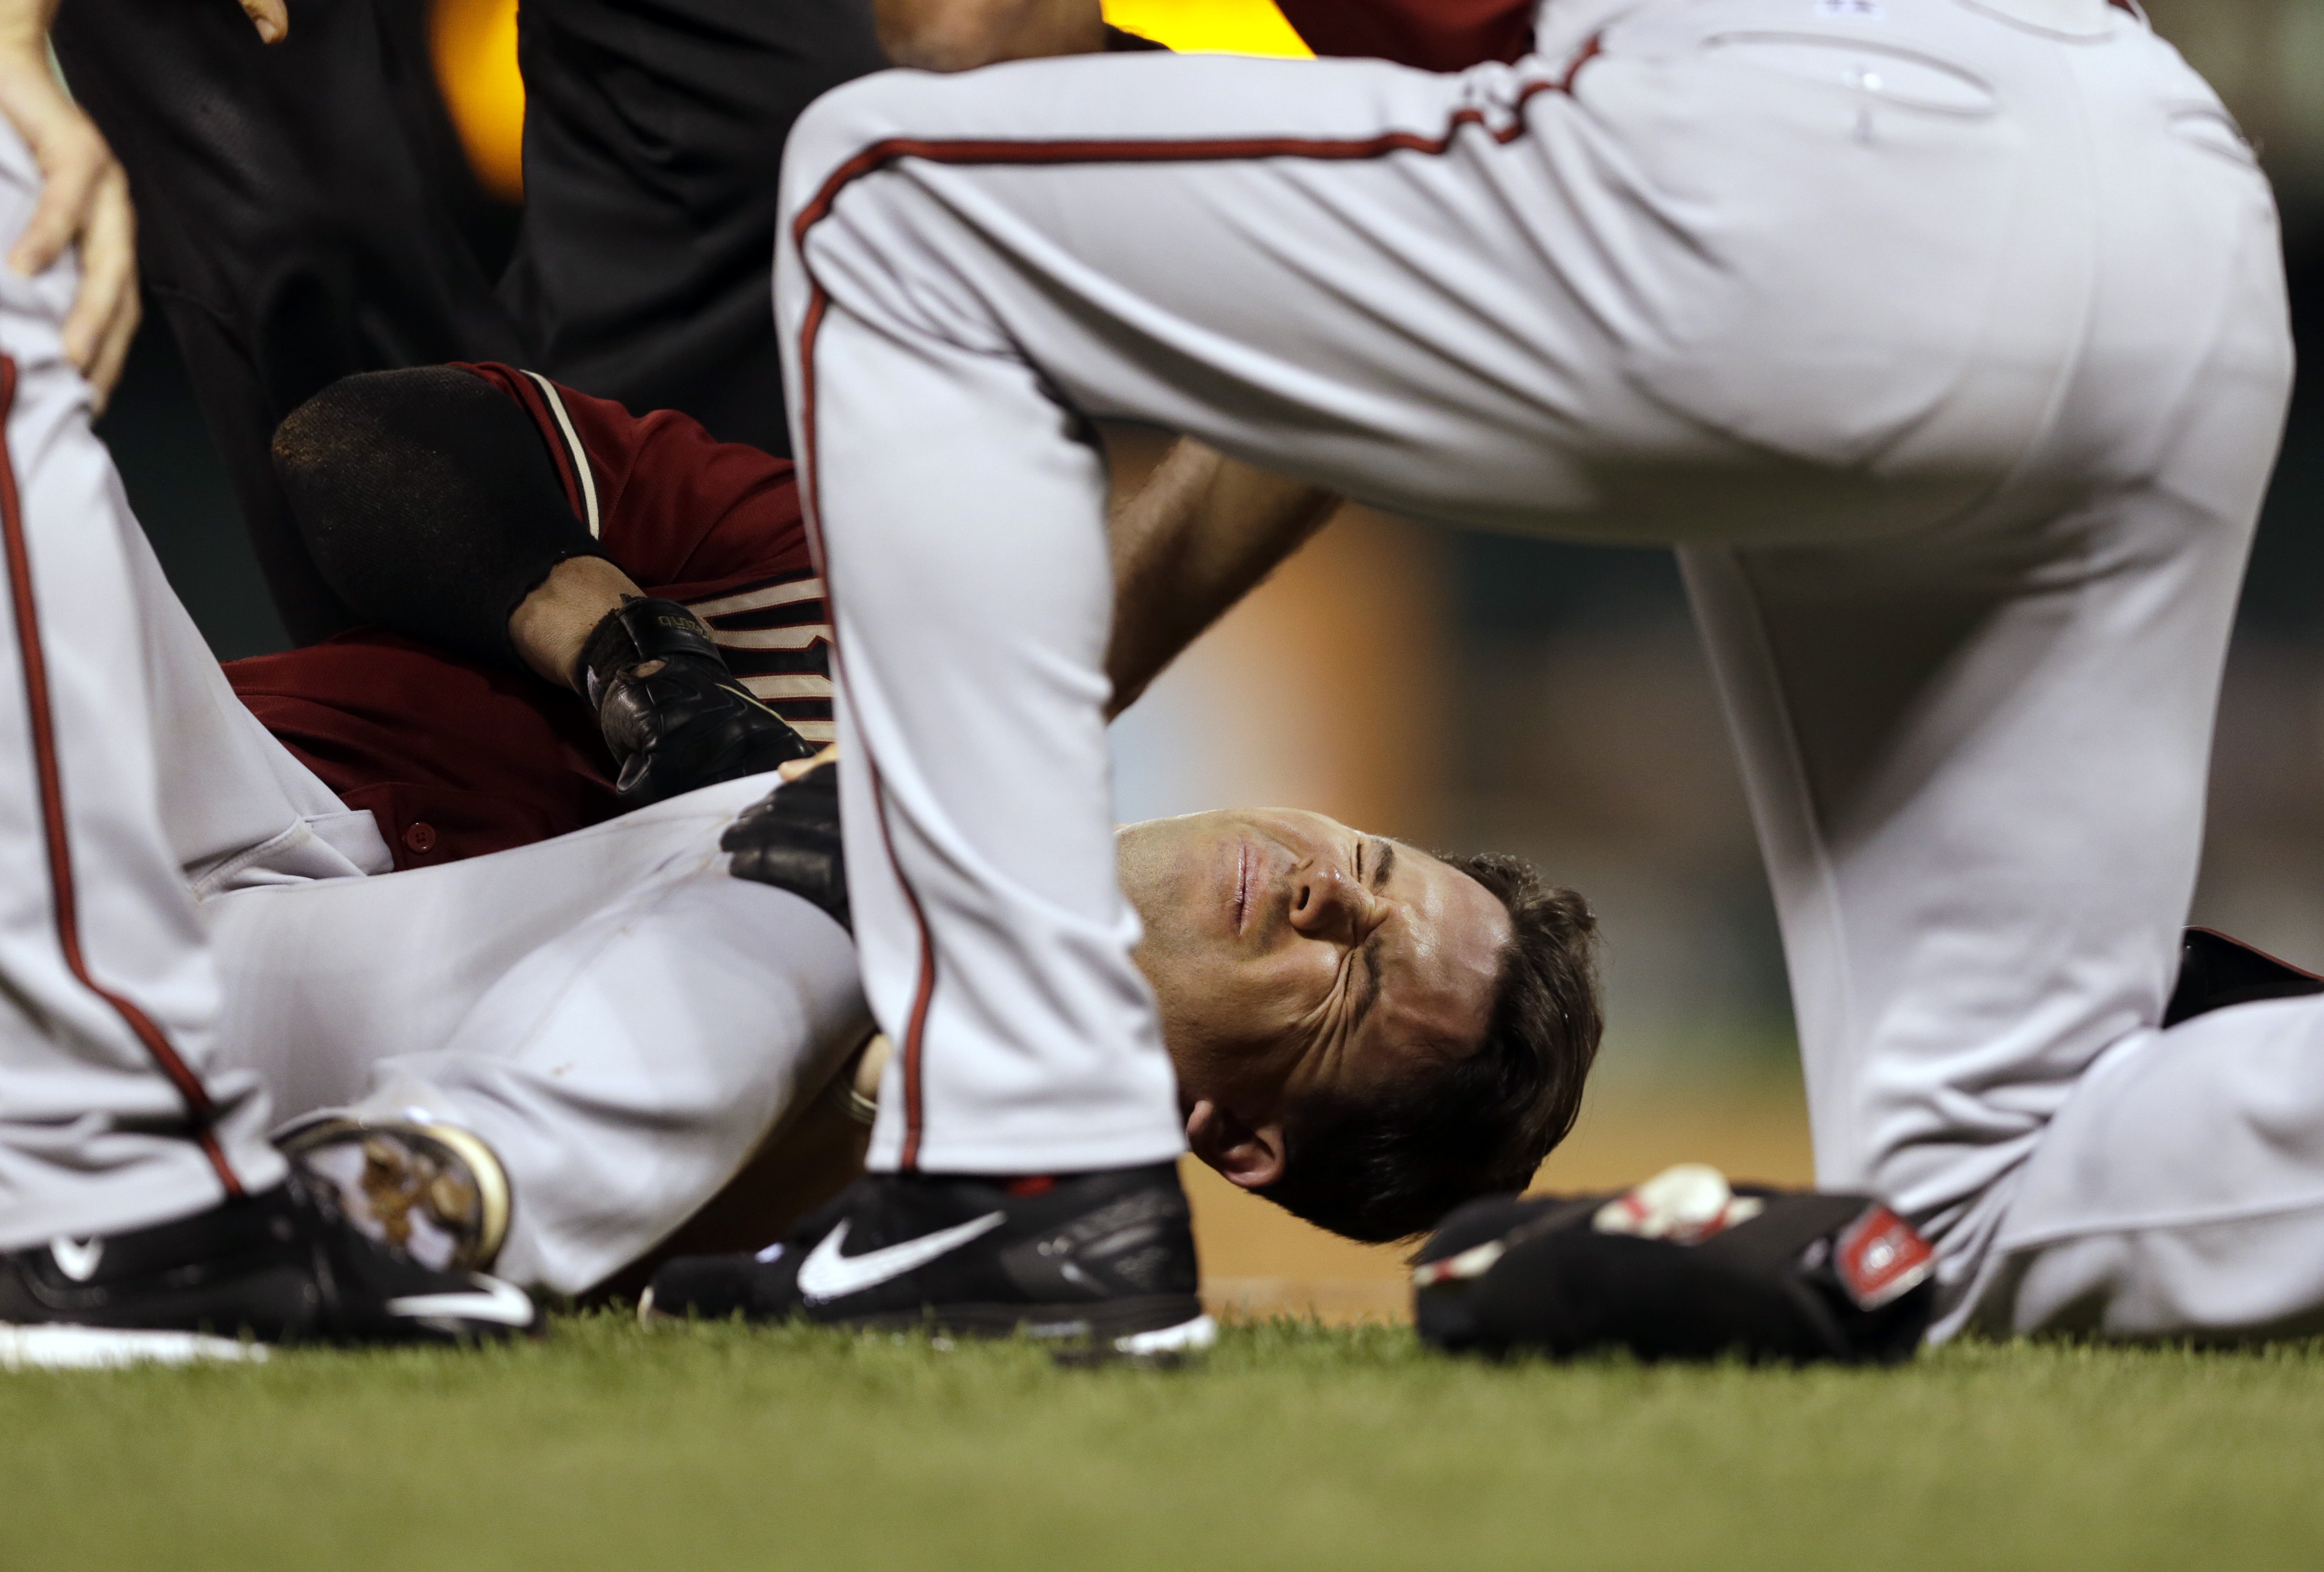 Arizona Diamondbacks' Tuffy Gosewisch holds his leg as he is tended to by teammates after being injured running out a ground out during the sixth inning of a baseball game against the St. Louis Cardinals Wednesday, May 27, 2015, in St. Louis. Gosewisch le